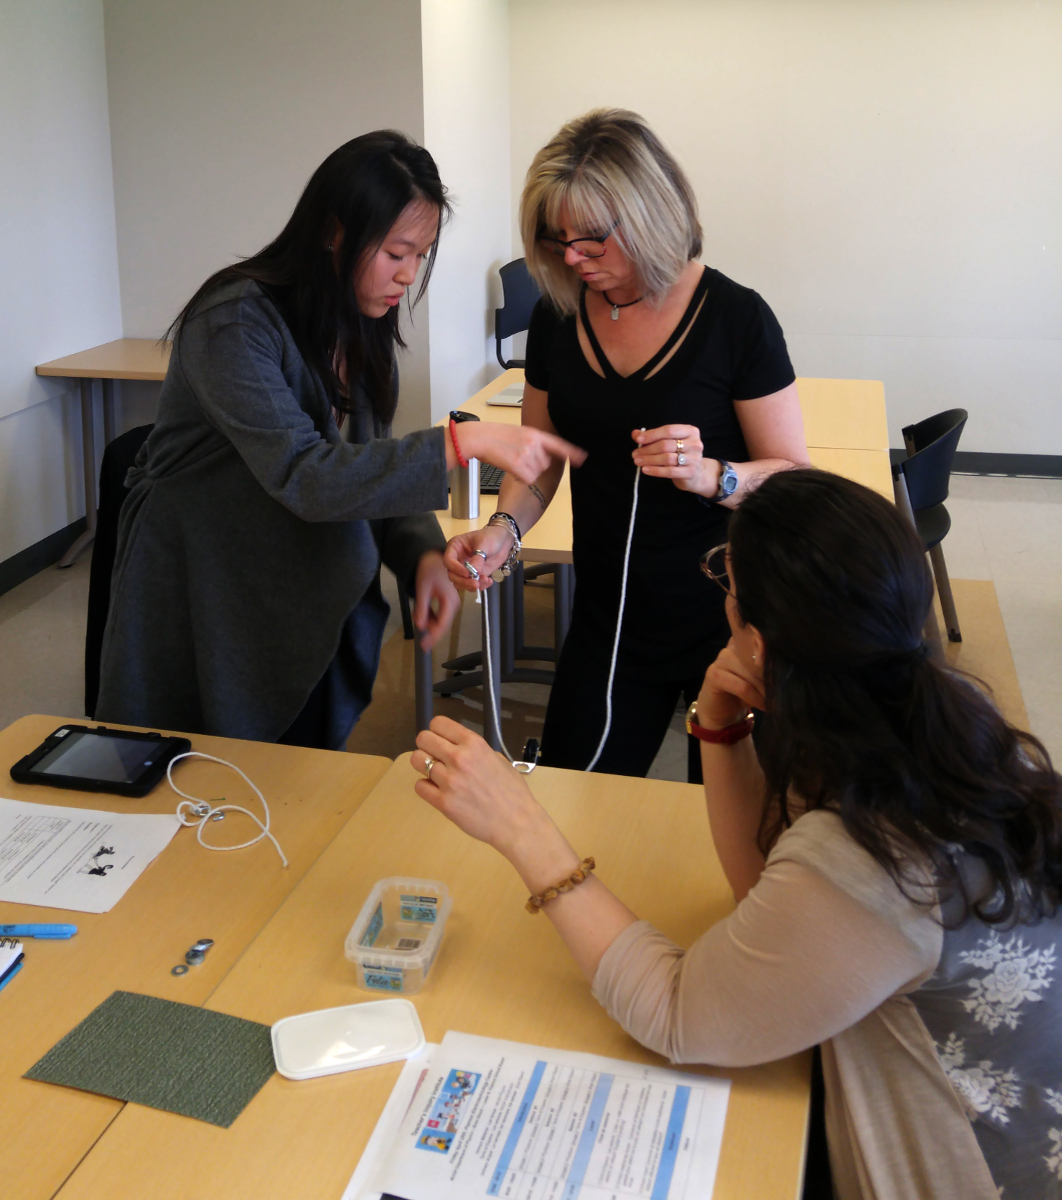 A McGill physics student shows teachers how to set up an experiment